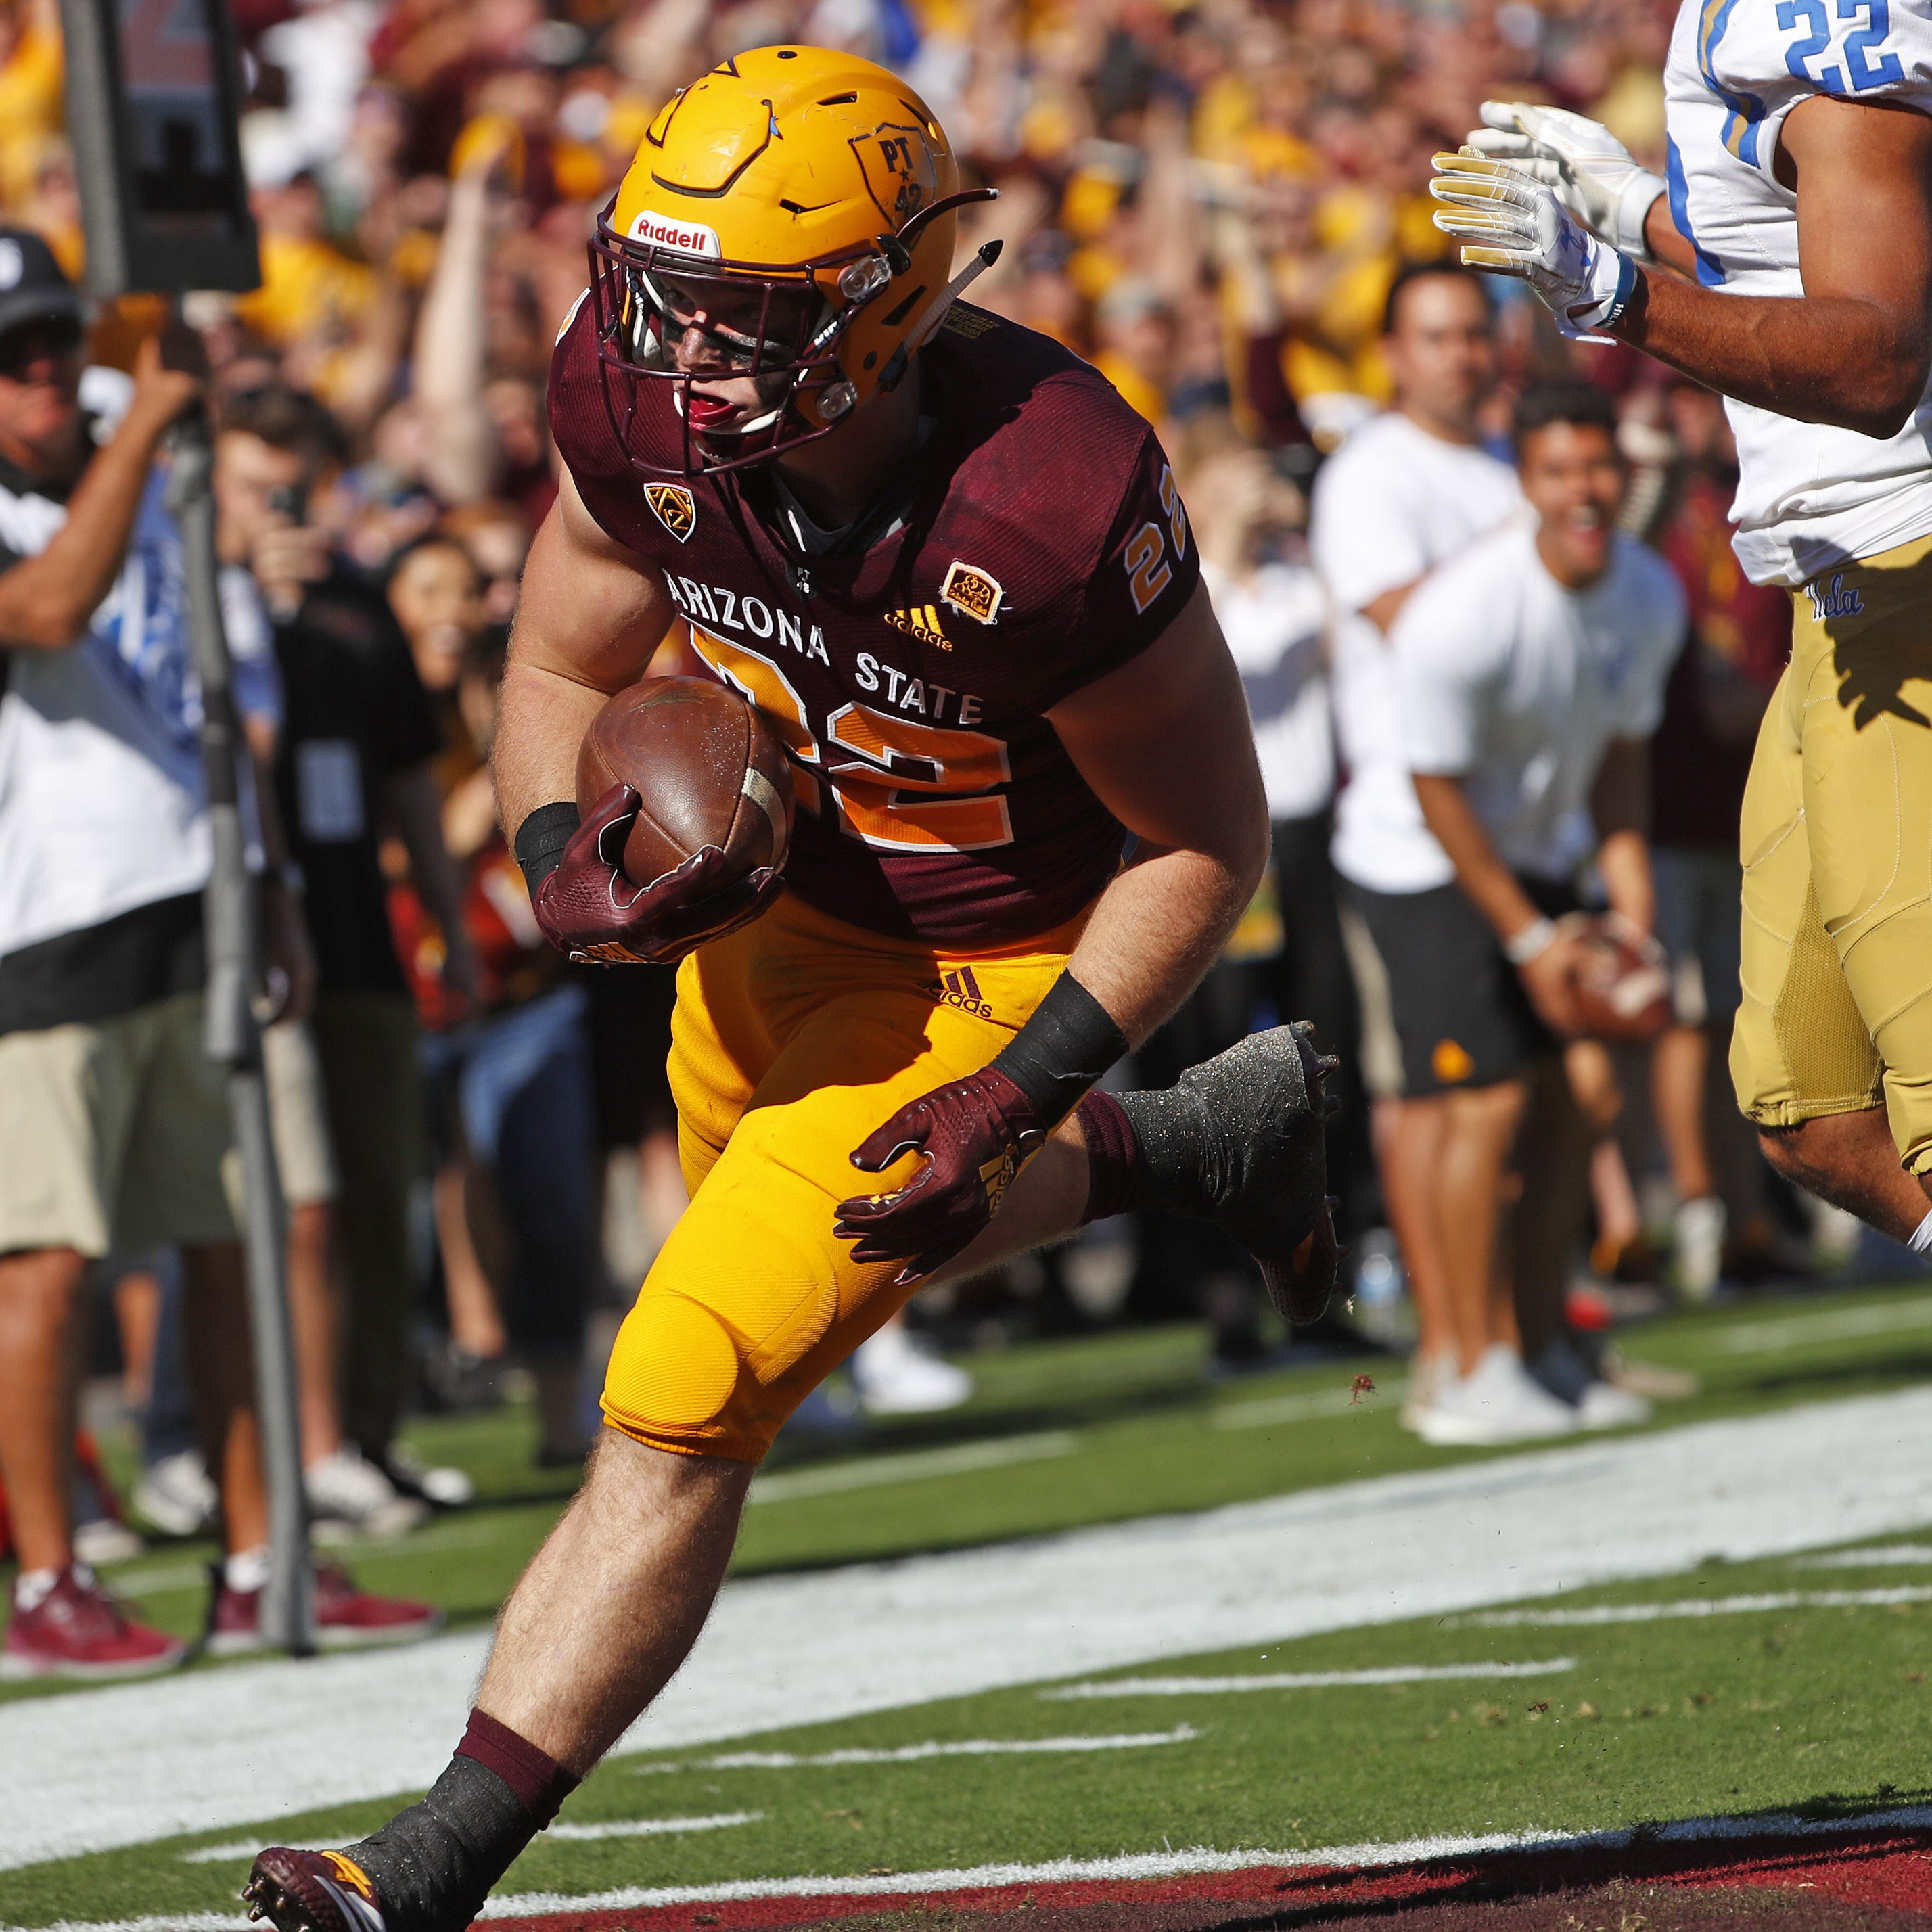 'Unselfish' Nick Ralston has been an unsung hero in ASU's productive run game